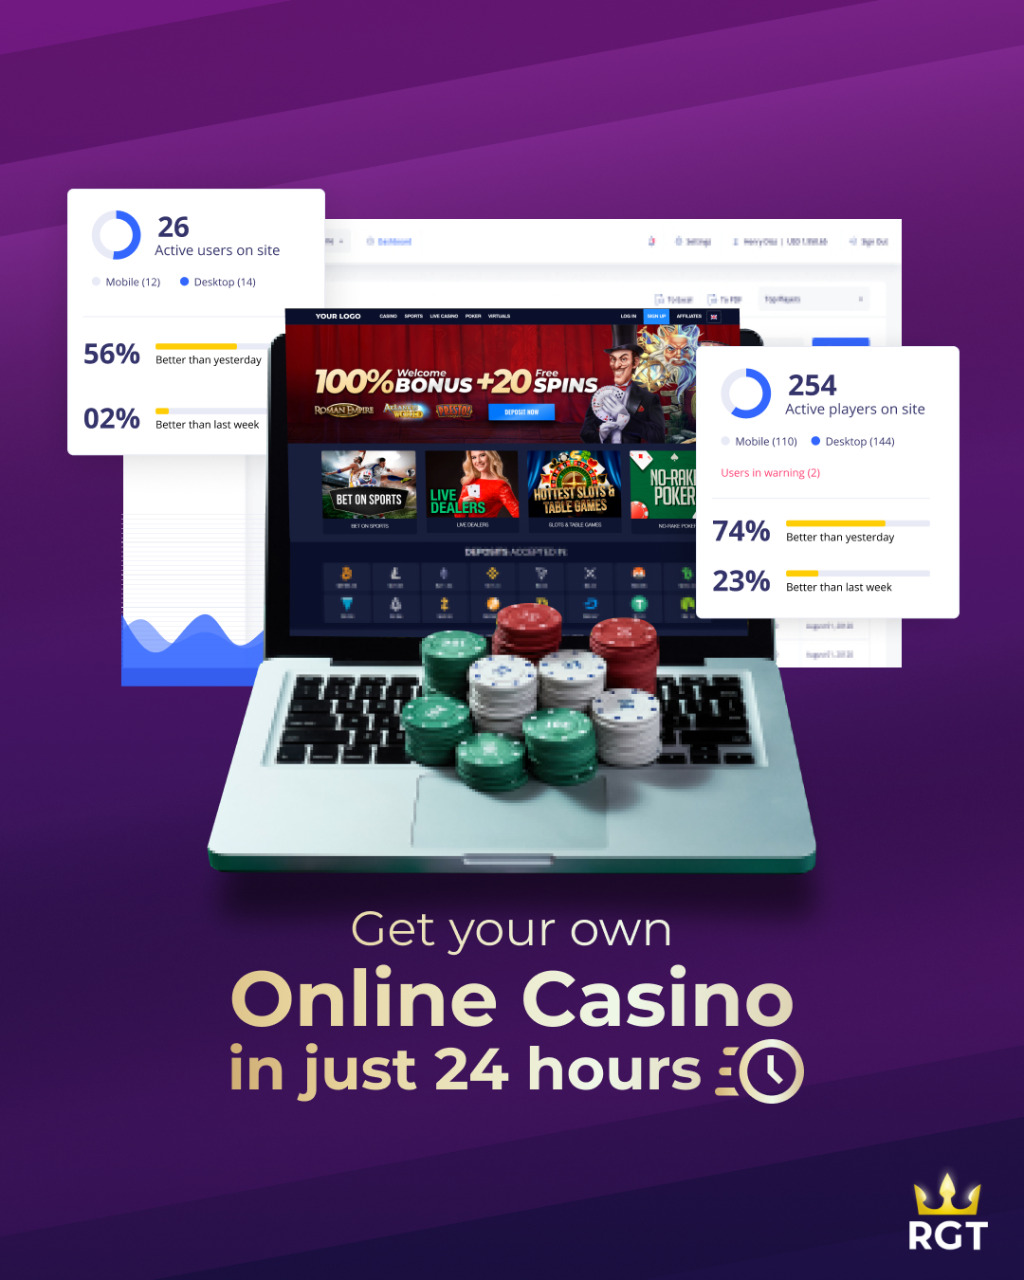 Rgt Com Gamecloud Is The World S First 995 Turnkey Online Casino Sportsbook Newswire